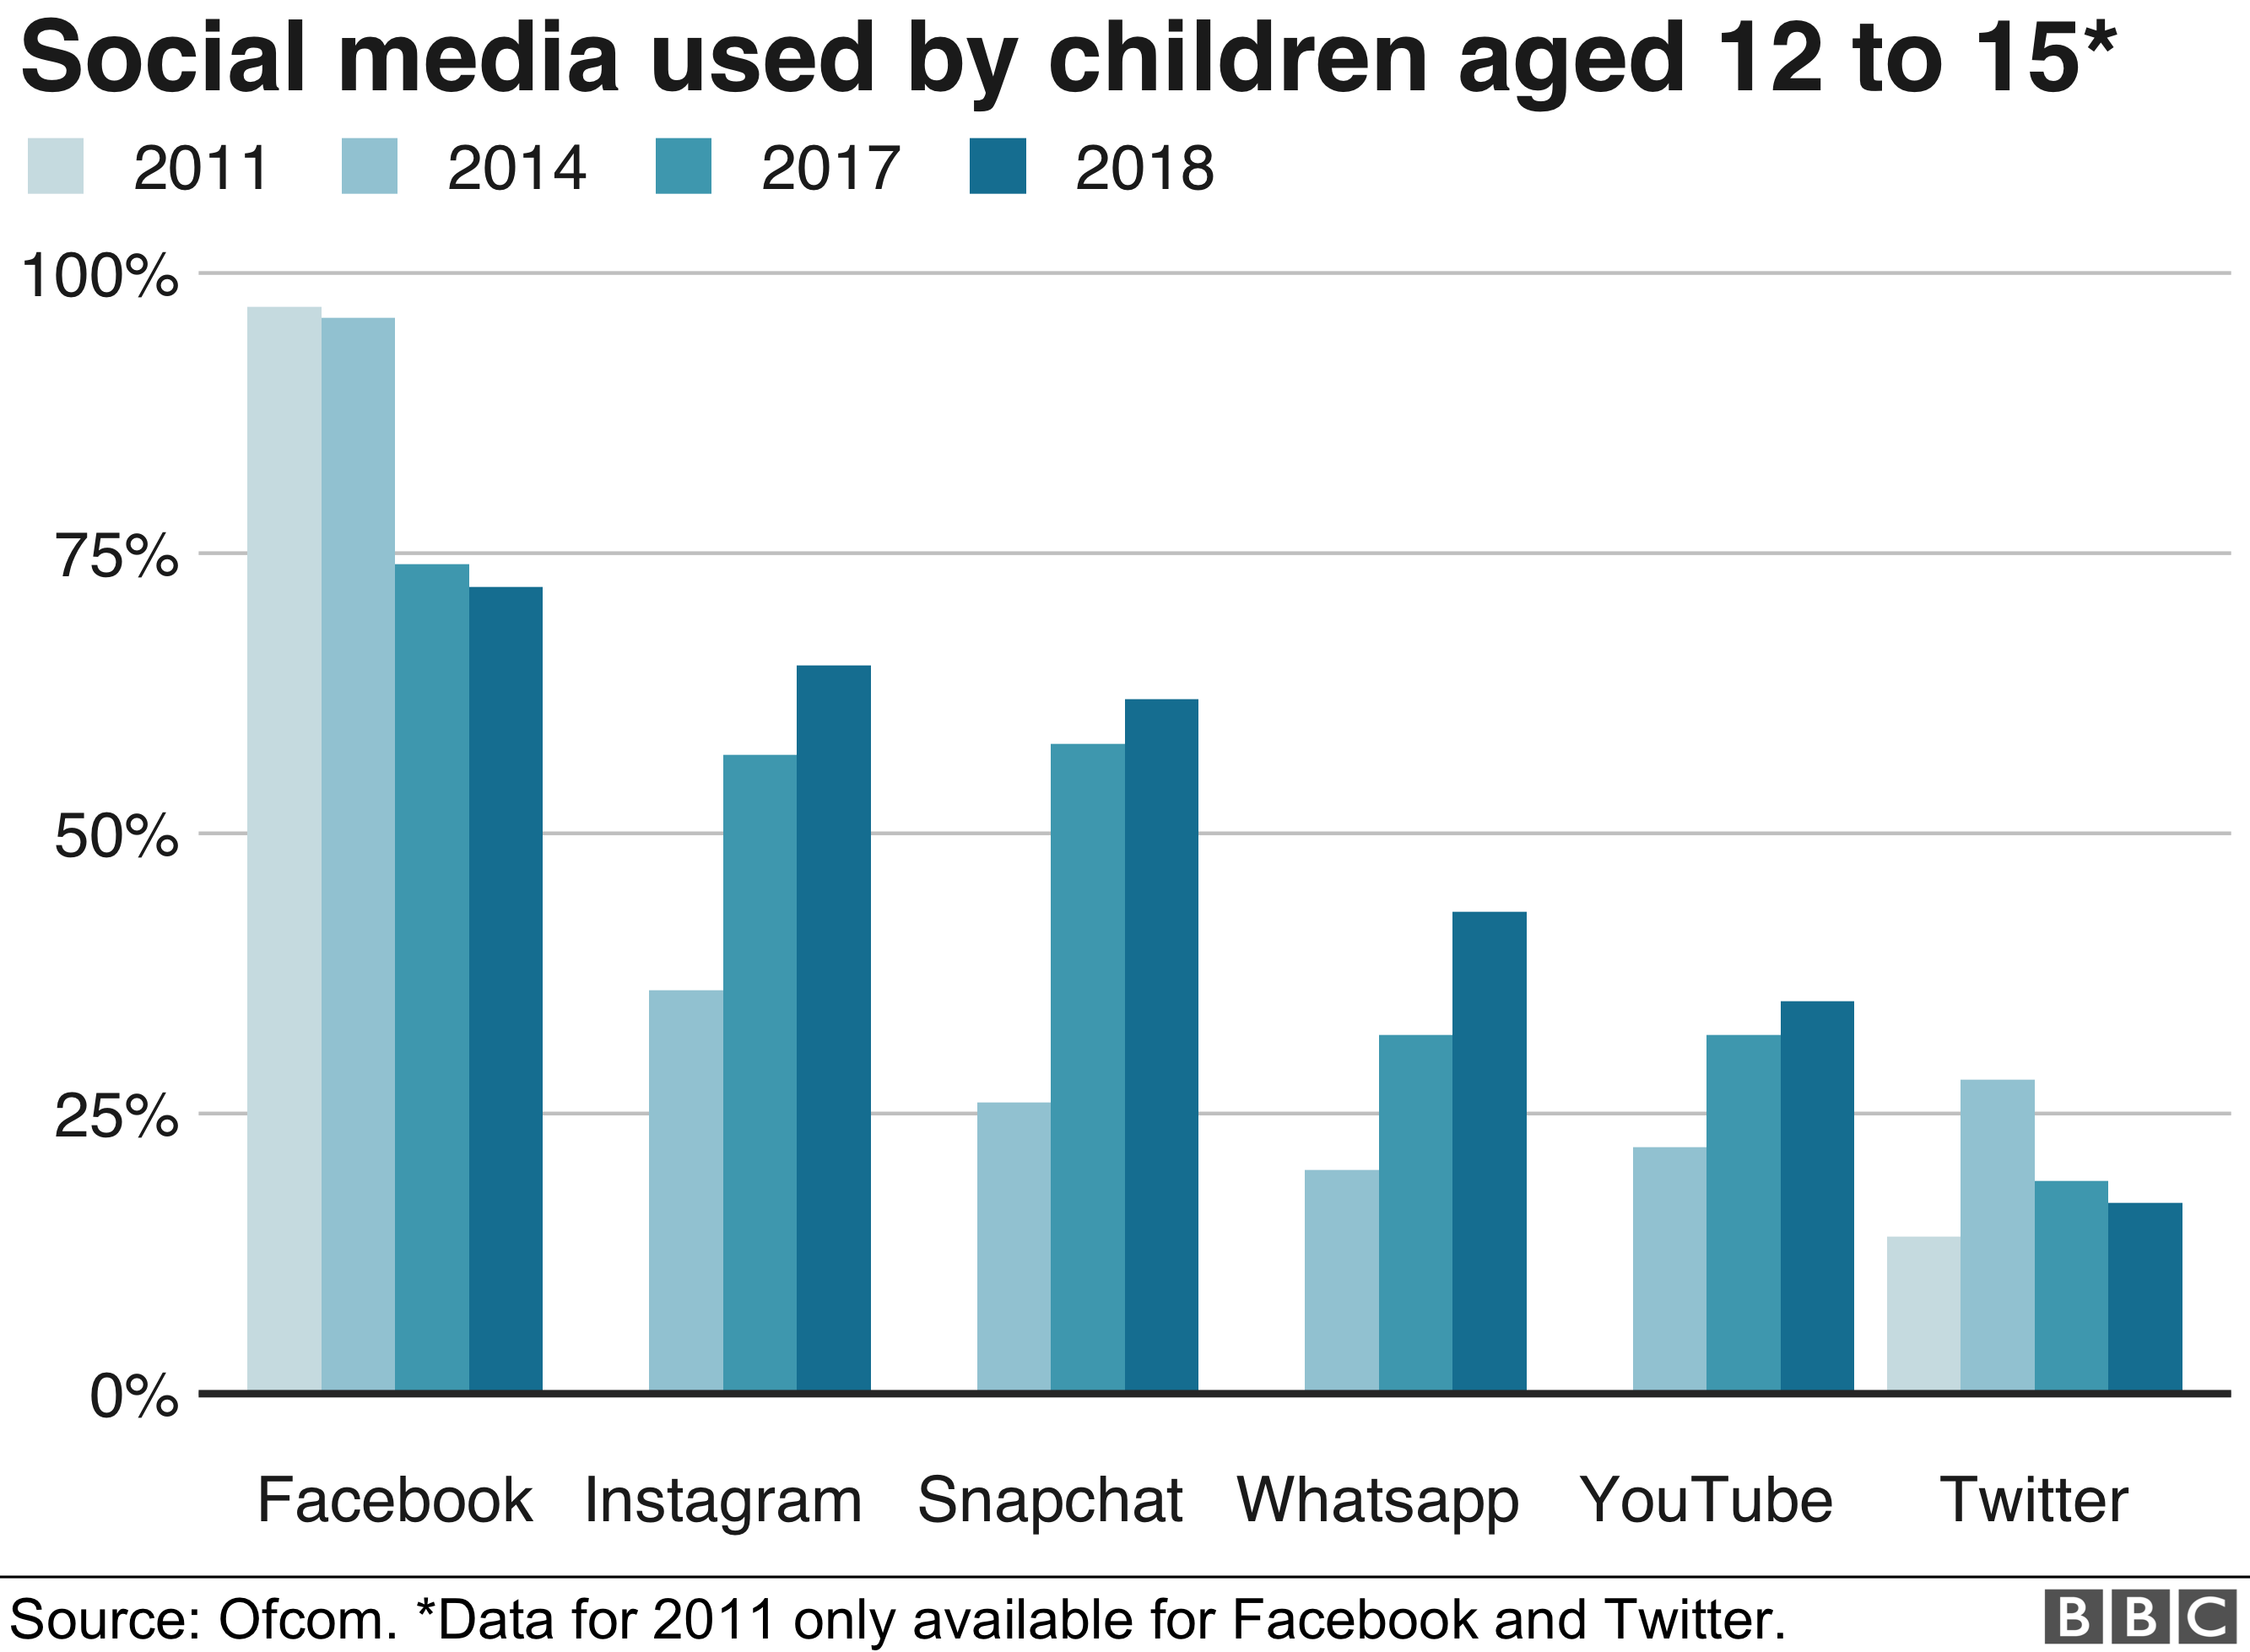 Ofcom chart showing that Facebook use by children aged 12-15 has fallen from 97% in 2011 to 72% in 2018